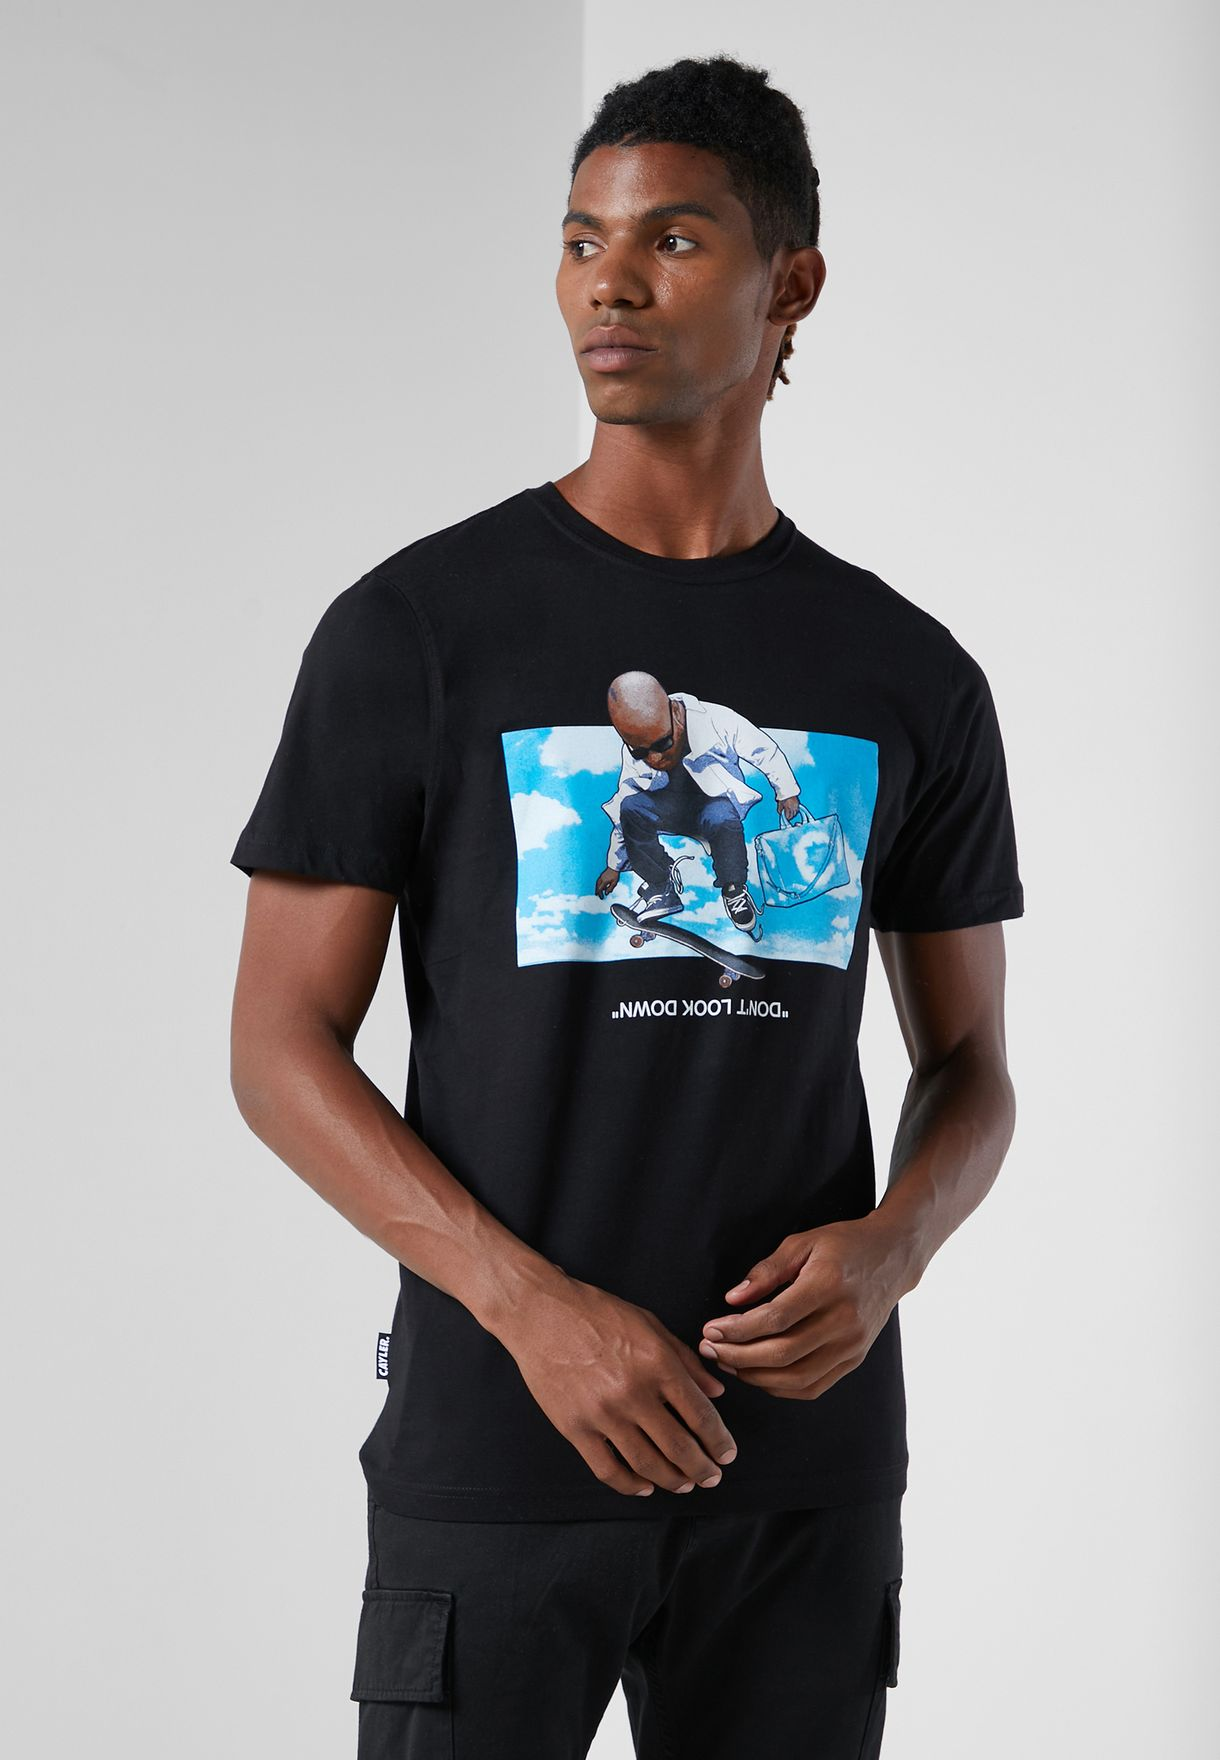 Don't Look T-Shirt